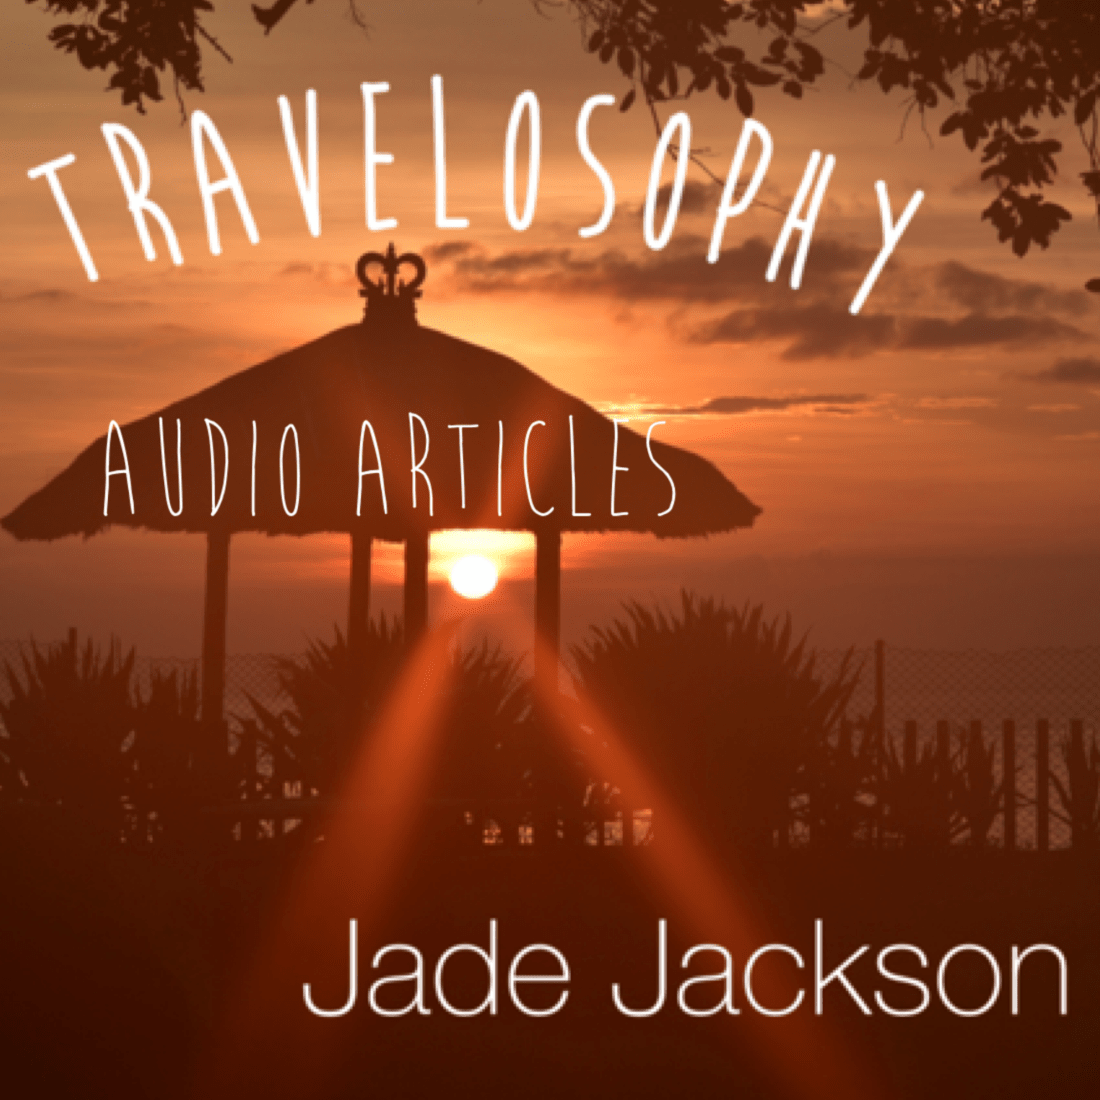 Travelosophy Audio Articles by Jade Jackson